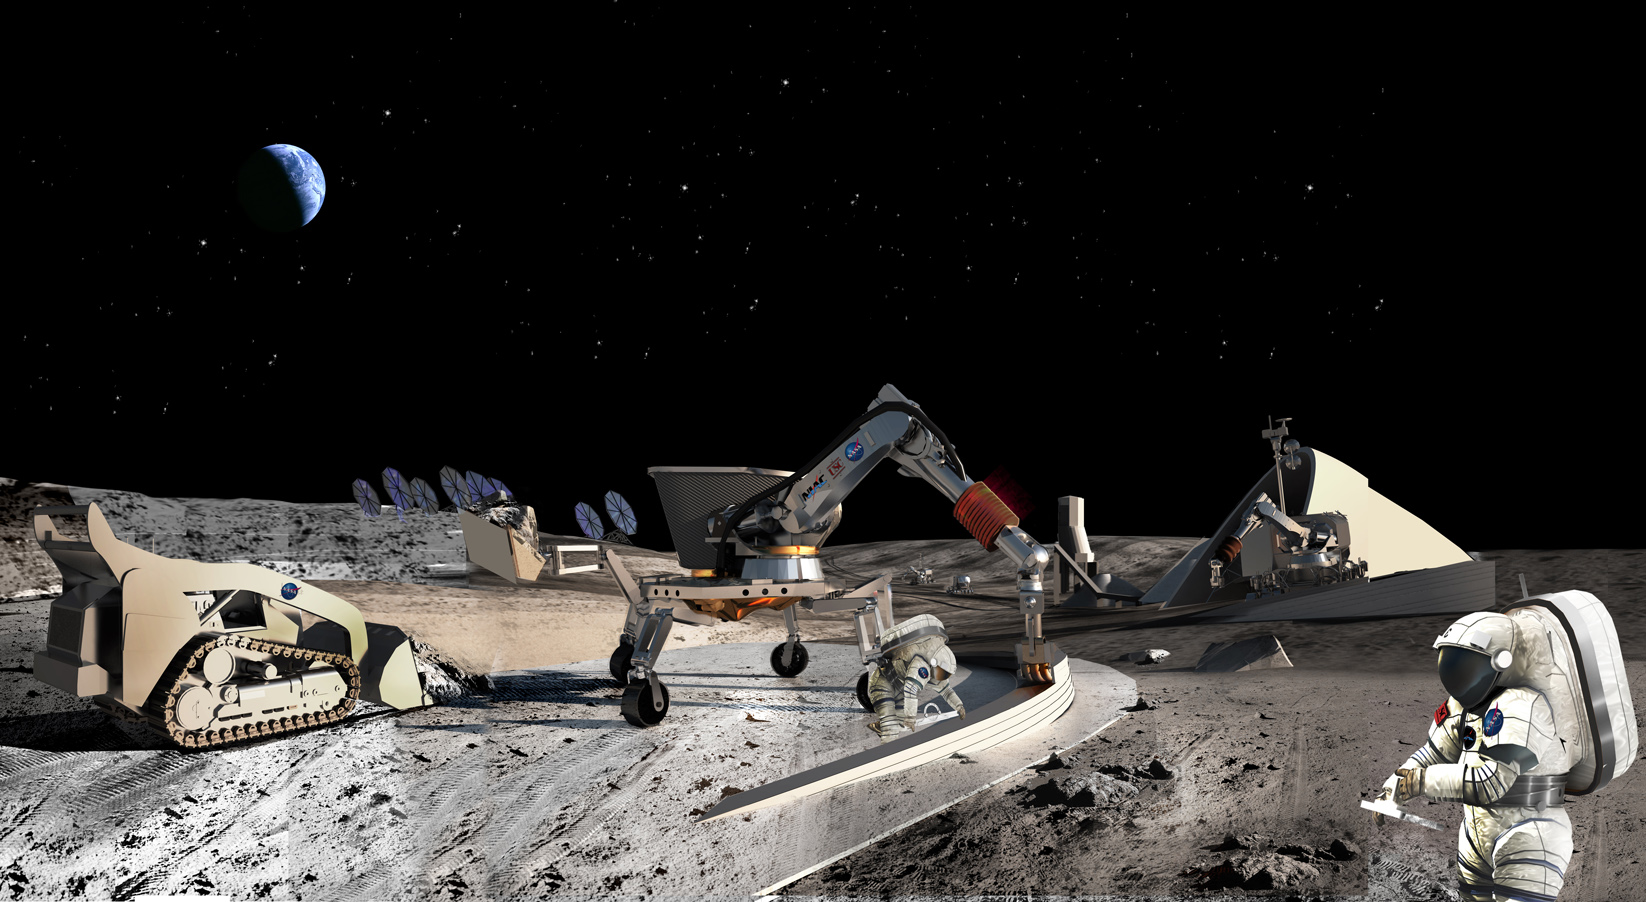 the base on moon by 2020 - photo #17